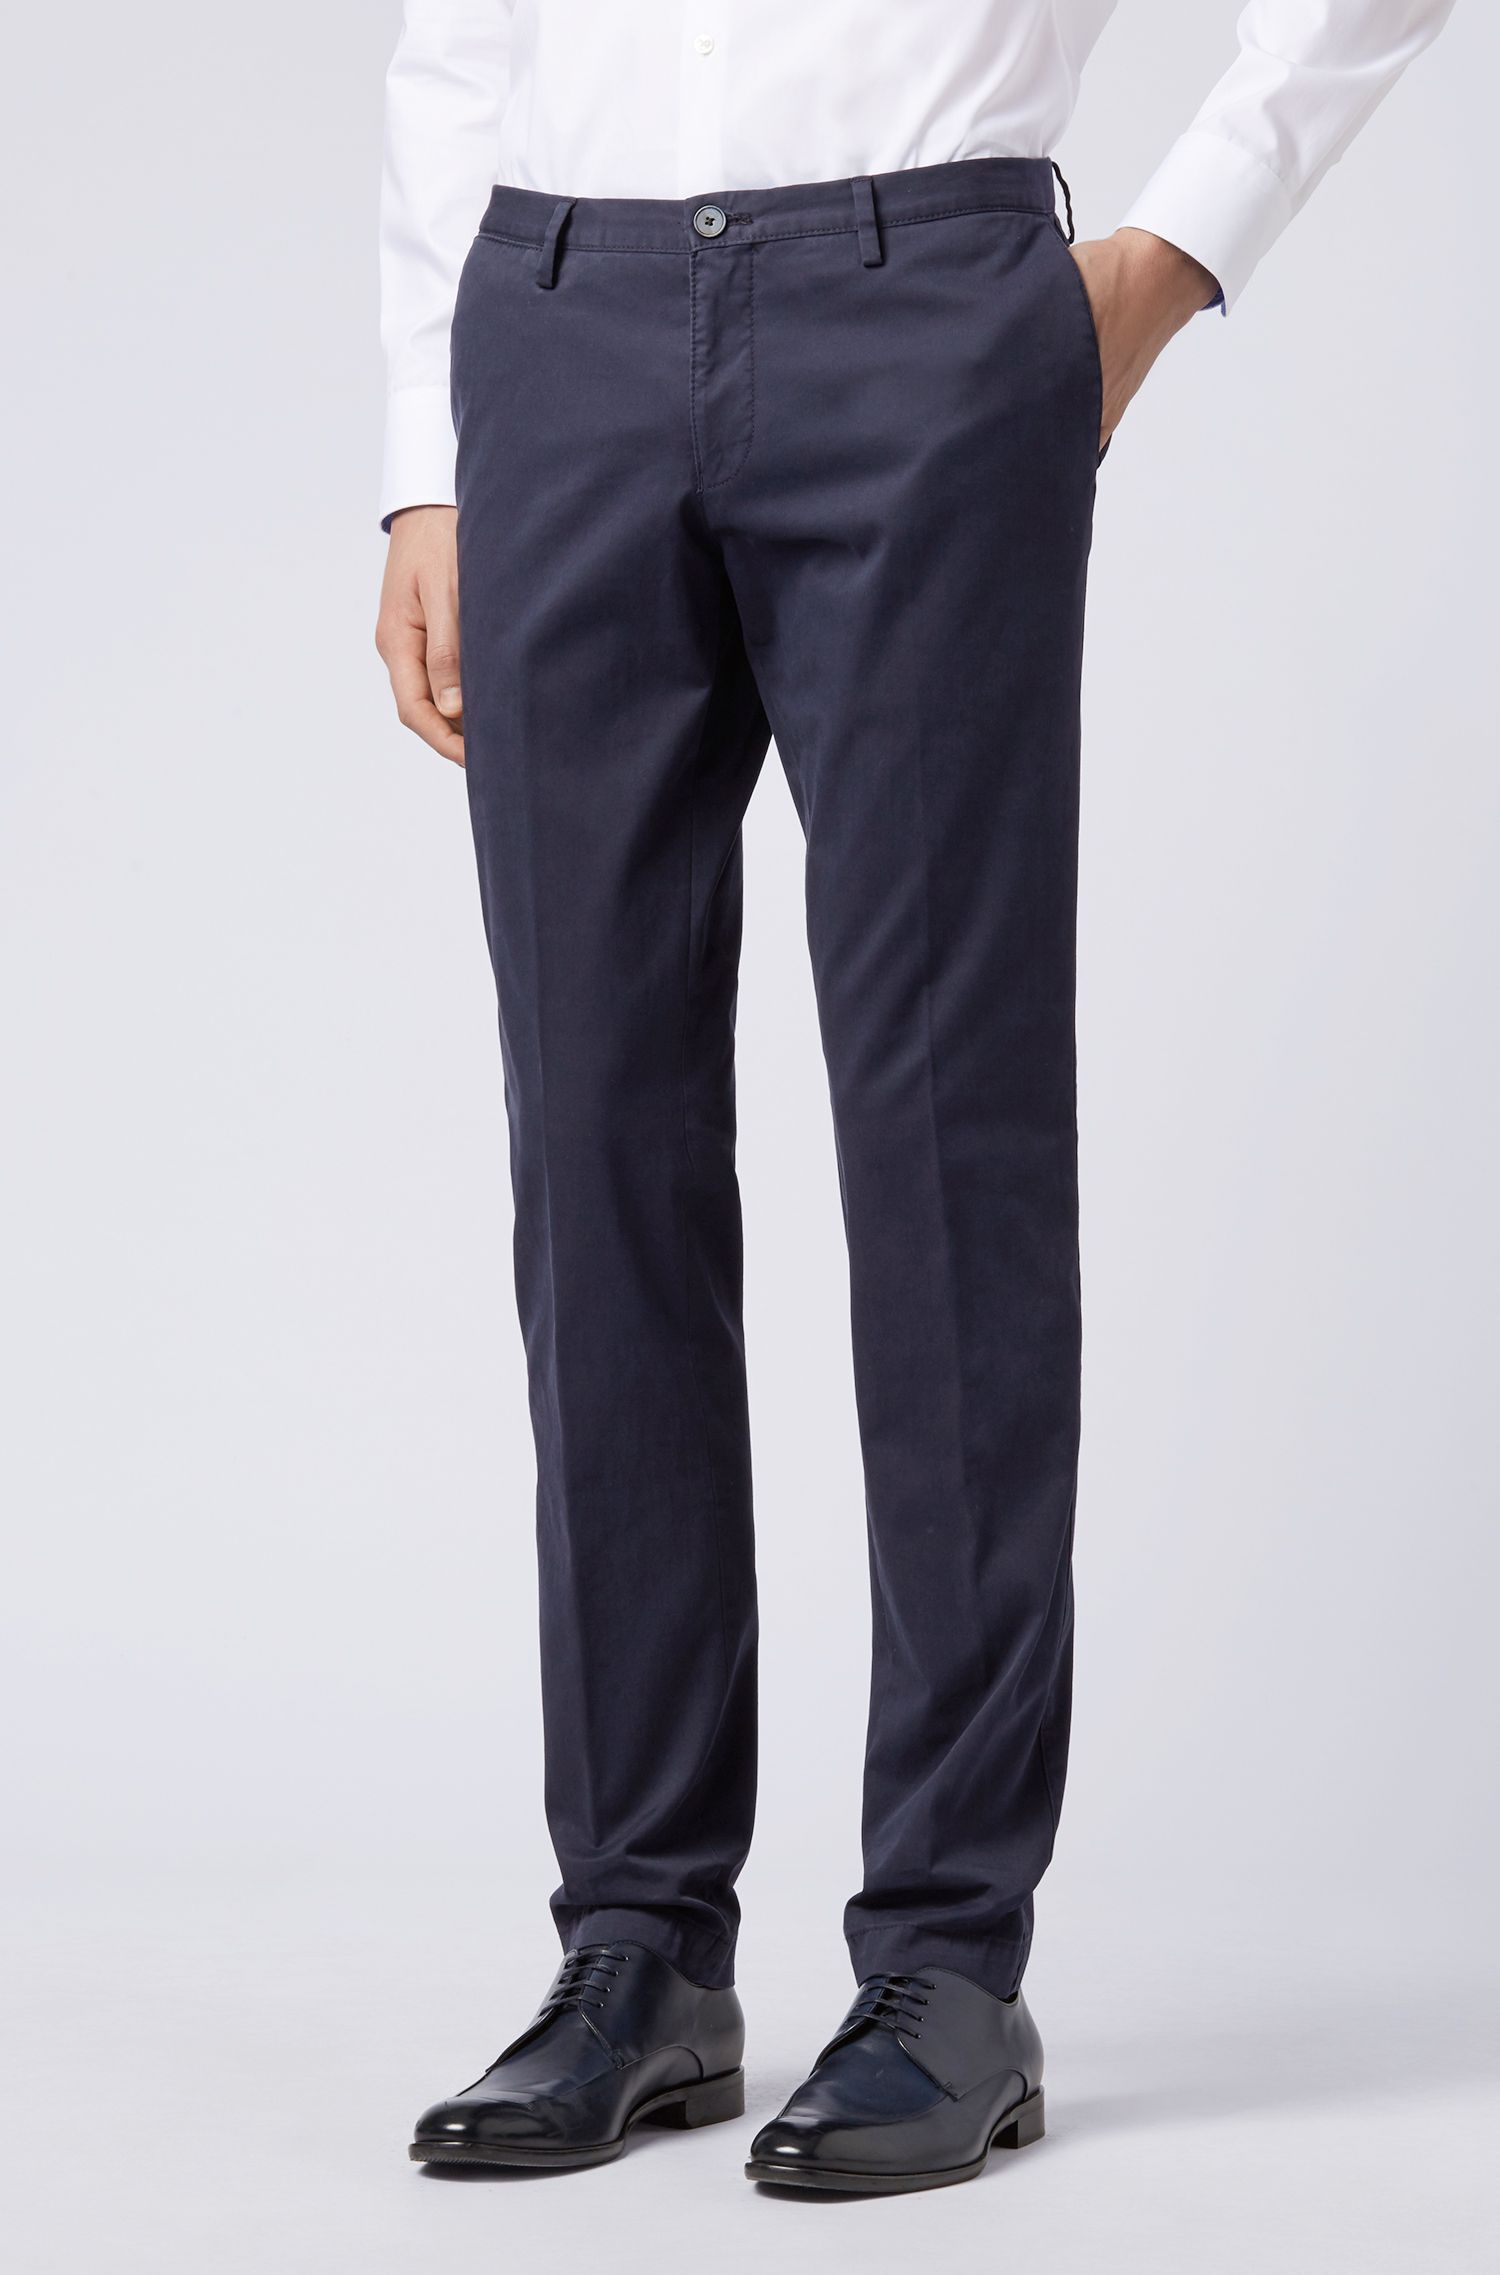 Hugo Boss - Slim-fit trousers in garment-dyed stretch cotton - 3